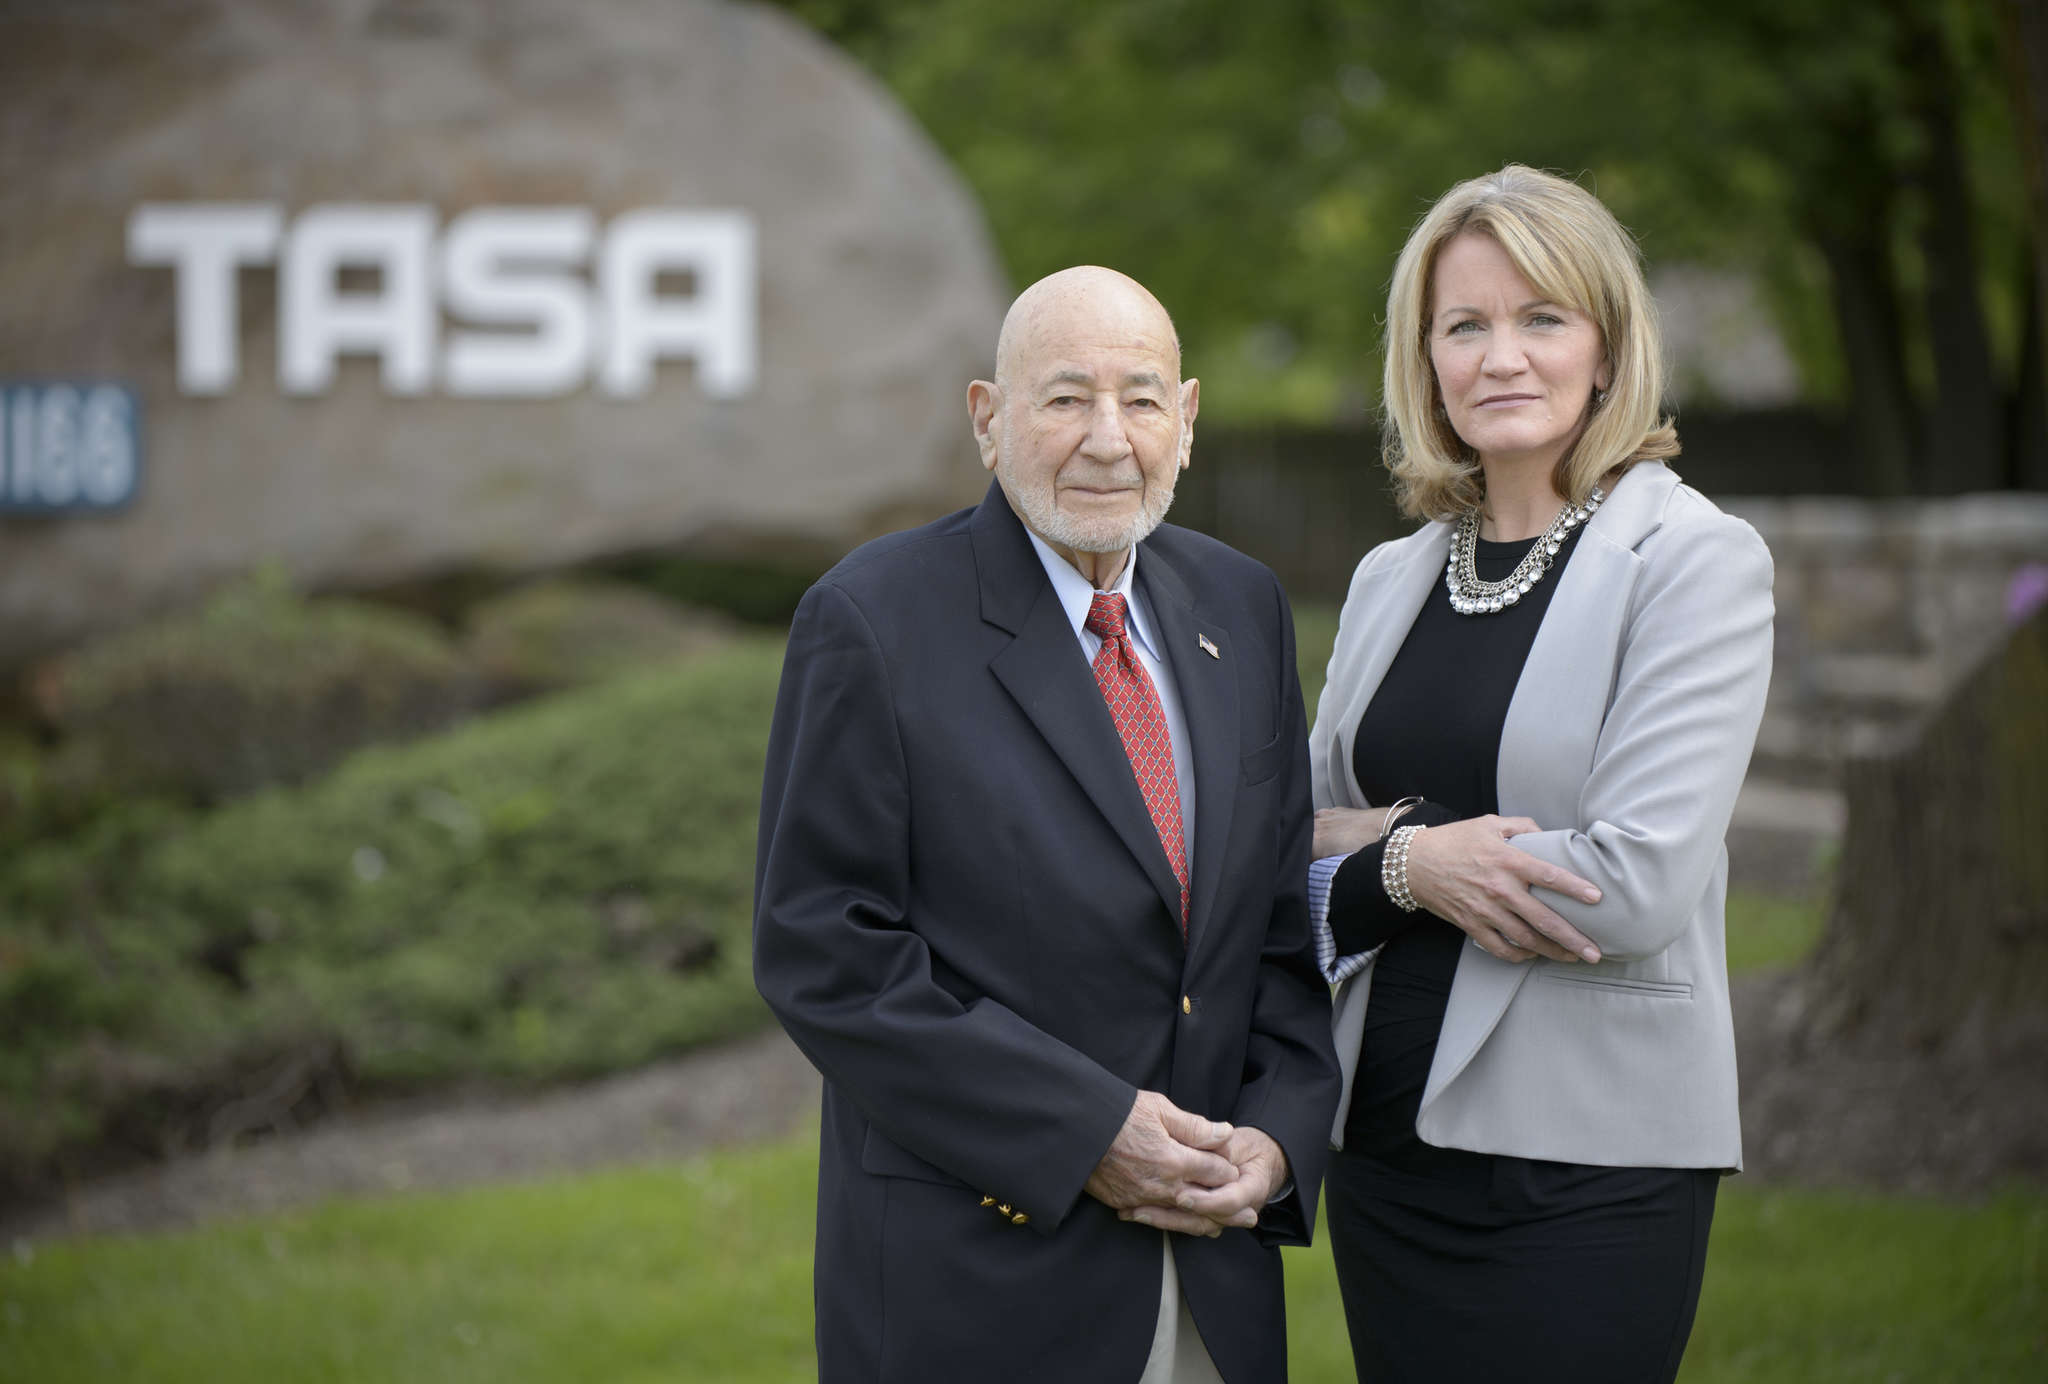 """TASA Group cofounder Jay Rosen is joined by CEO Melinda """"Mindy"""" Sungenis in front of the company´s headquarters in Blue Bell. TASA plans to remain independent, Sungenis said, in part by emphasizing personal service and carefully tracking legal trends."""